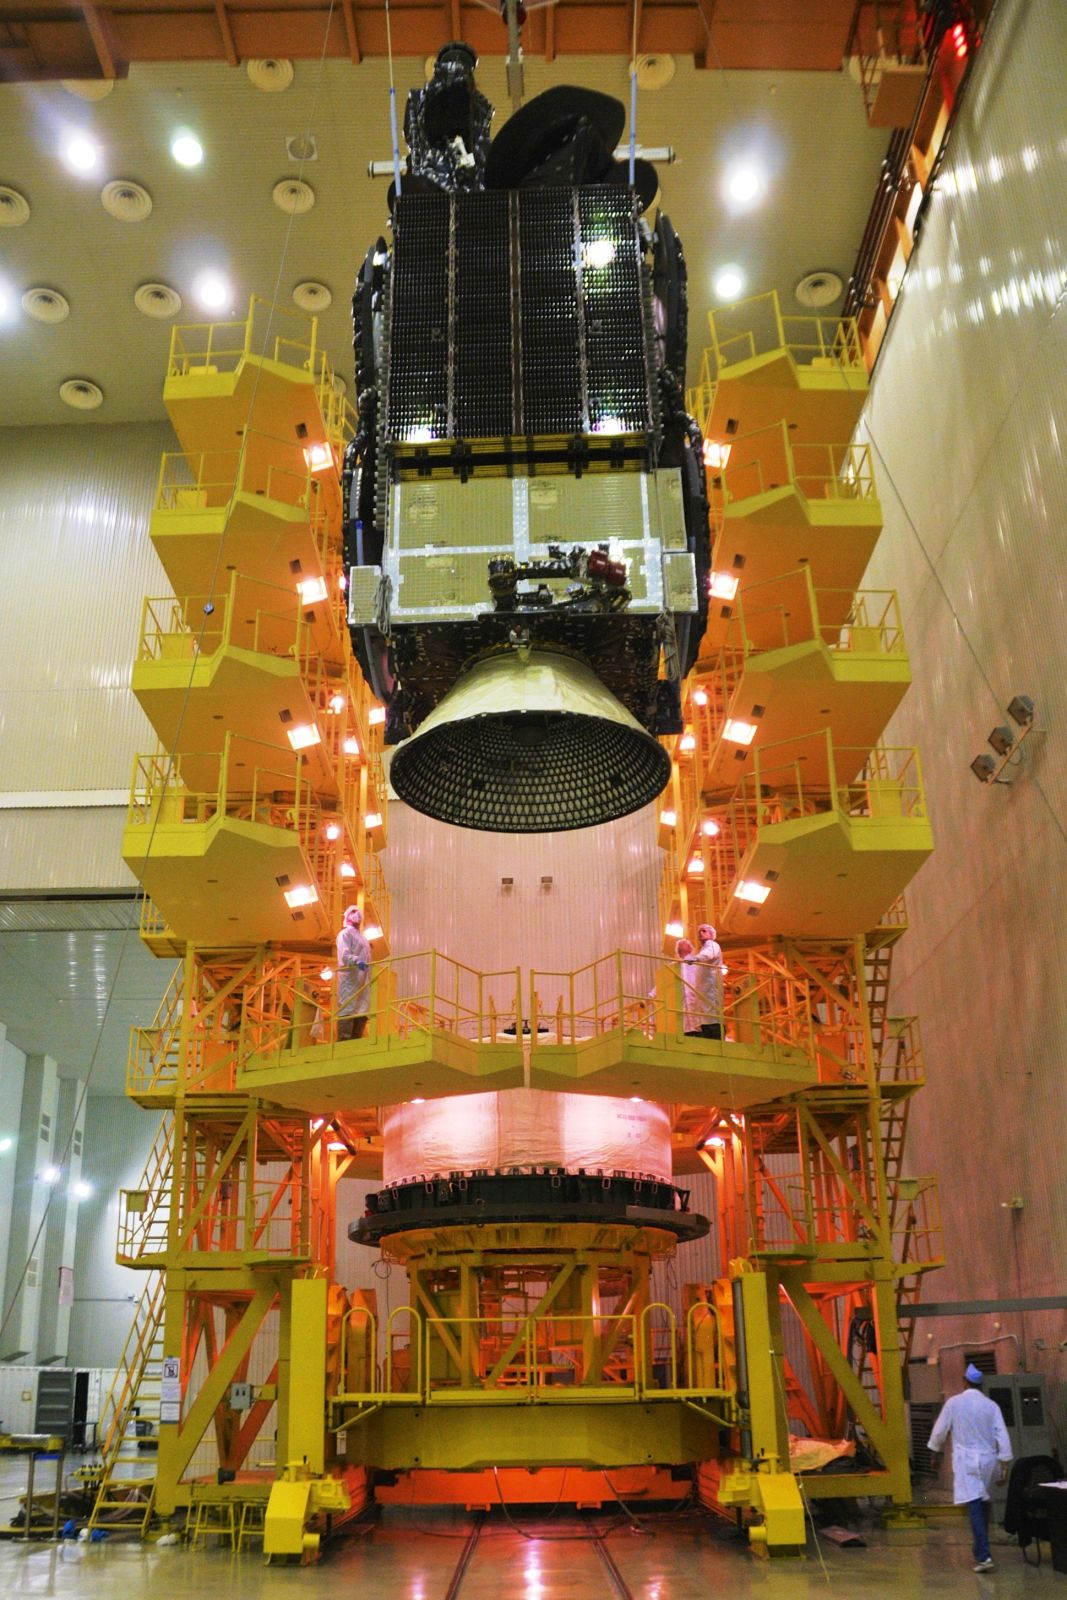 Intelsat 31 and flight adapter being hoisted onto the Briz-M upper stage.